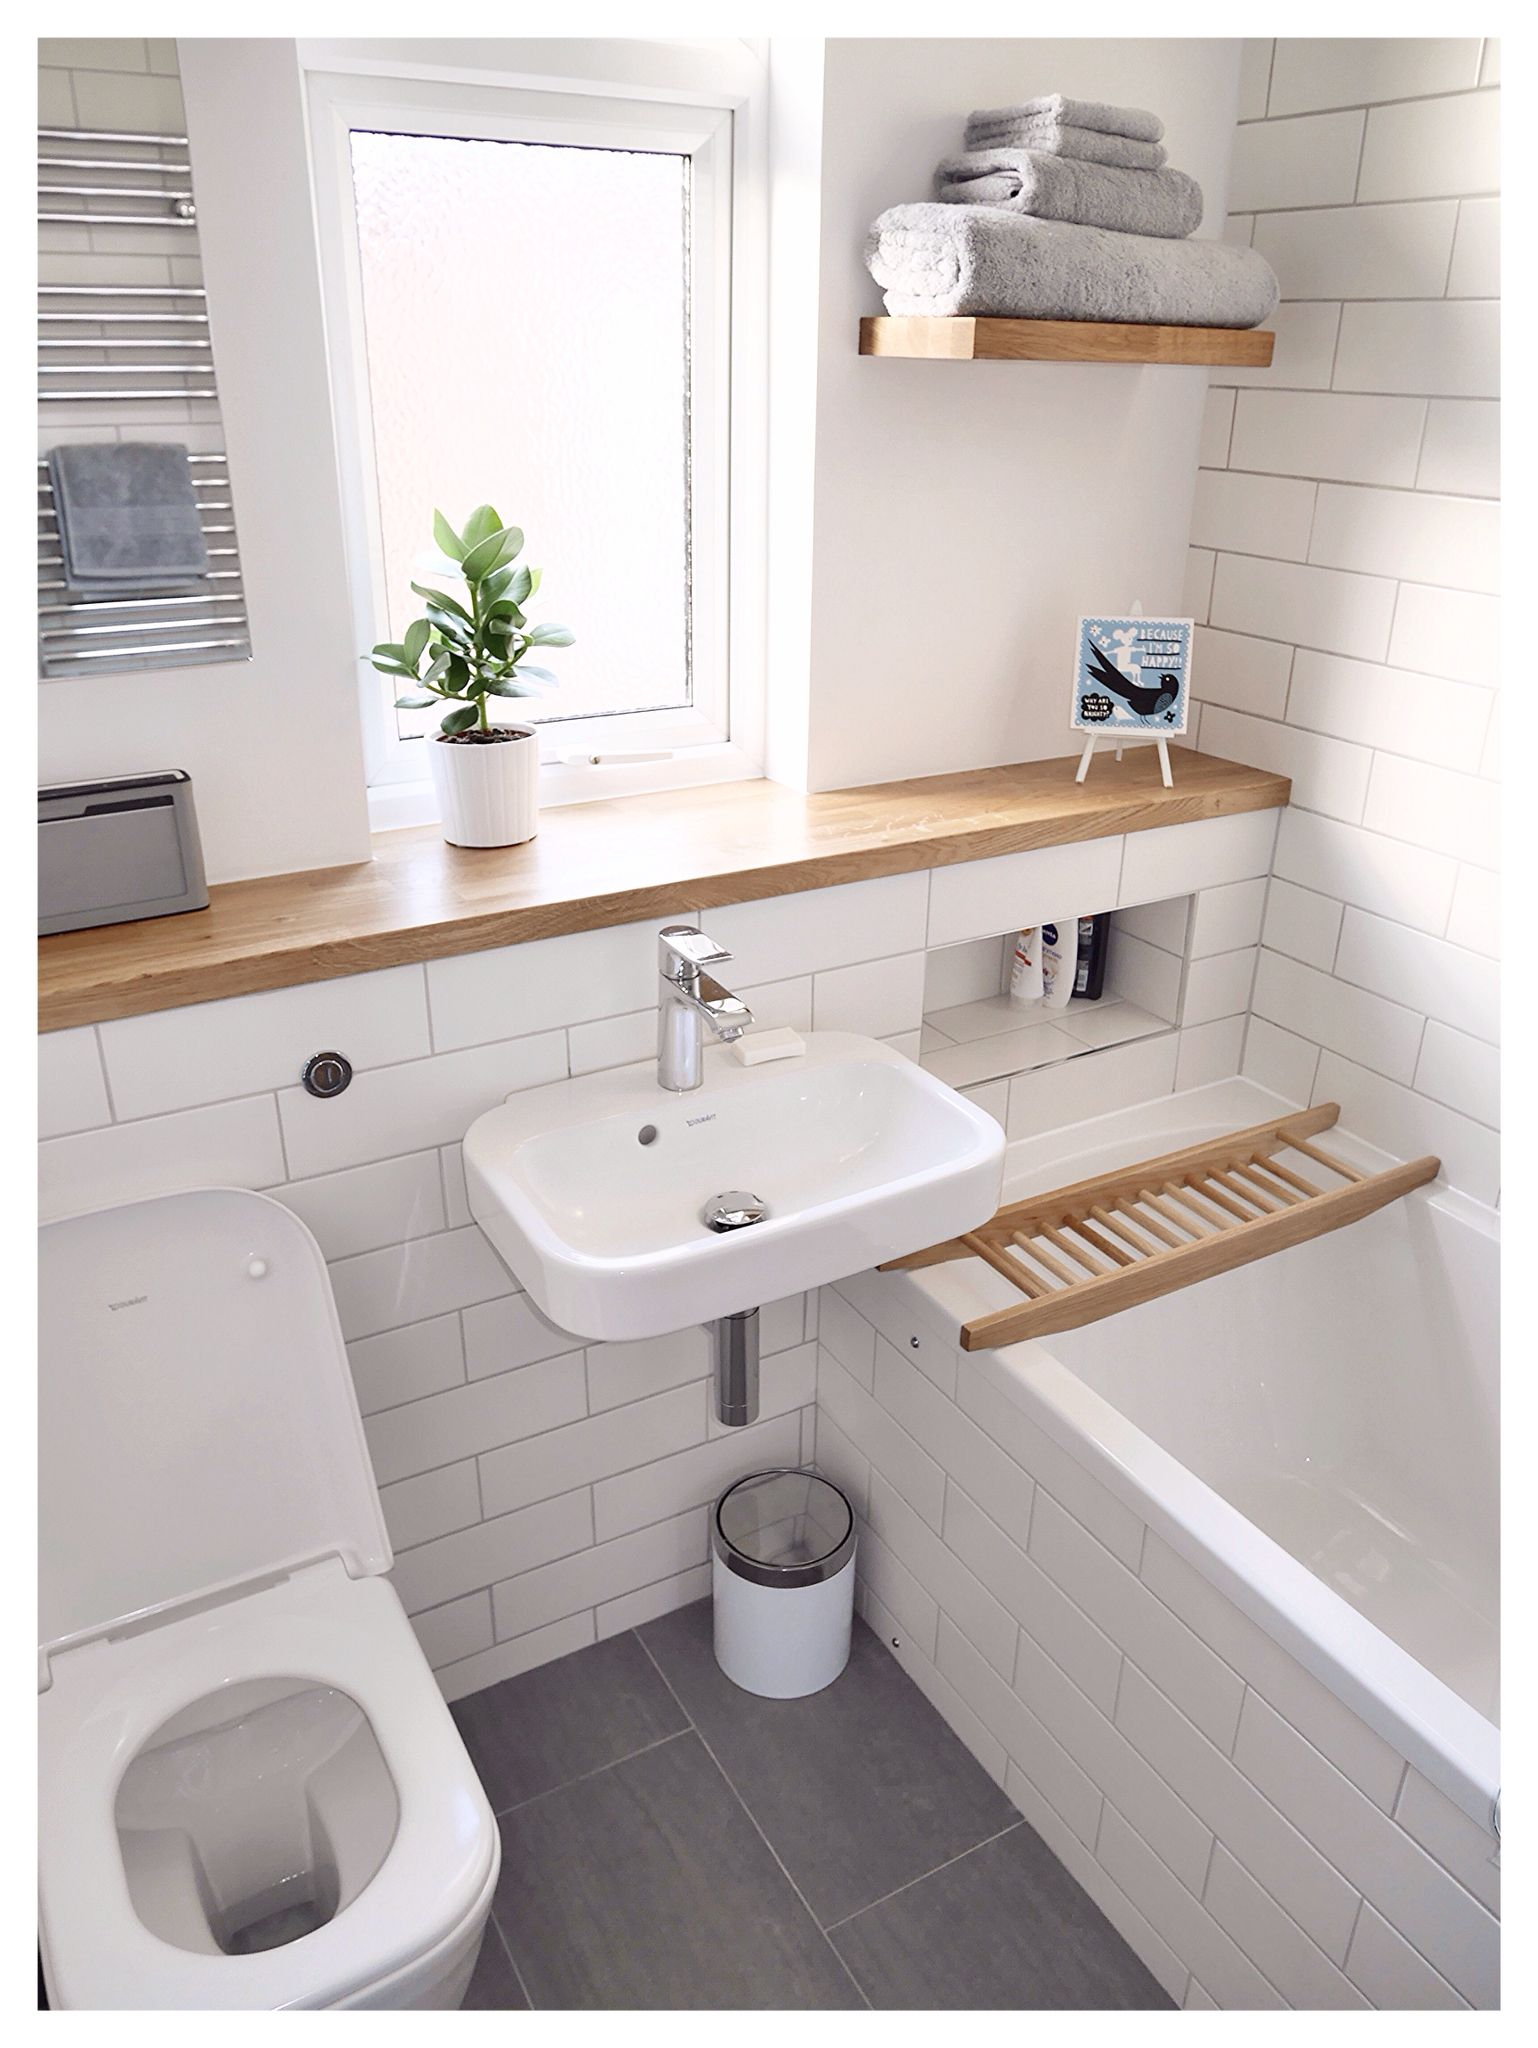 bathroom window ideas small bathrooms. Optimise Your Space With These Smart Small Bathroom Ideas 25  Beautiful Small Bathroom Ideas Oak Shelves Topps Tiles And